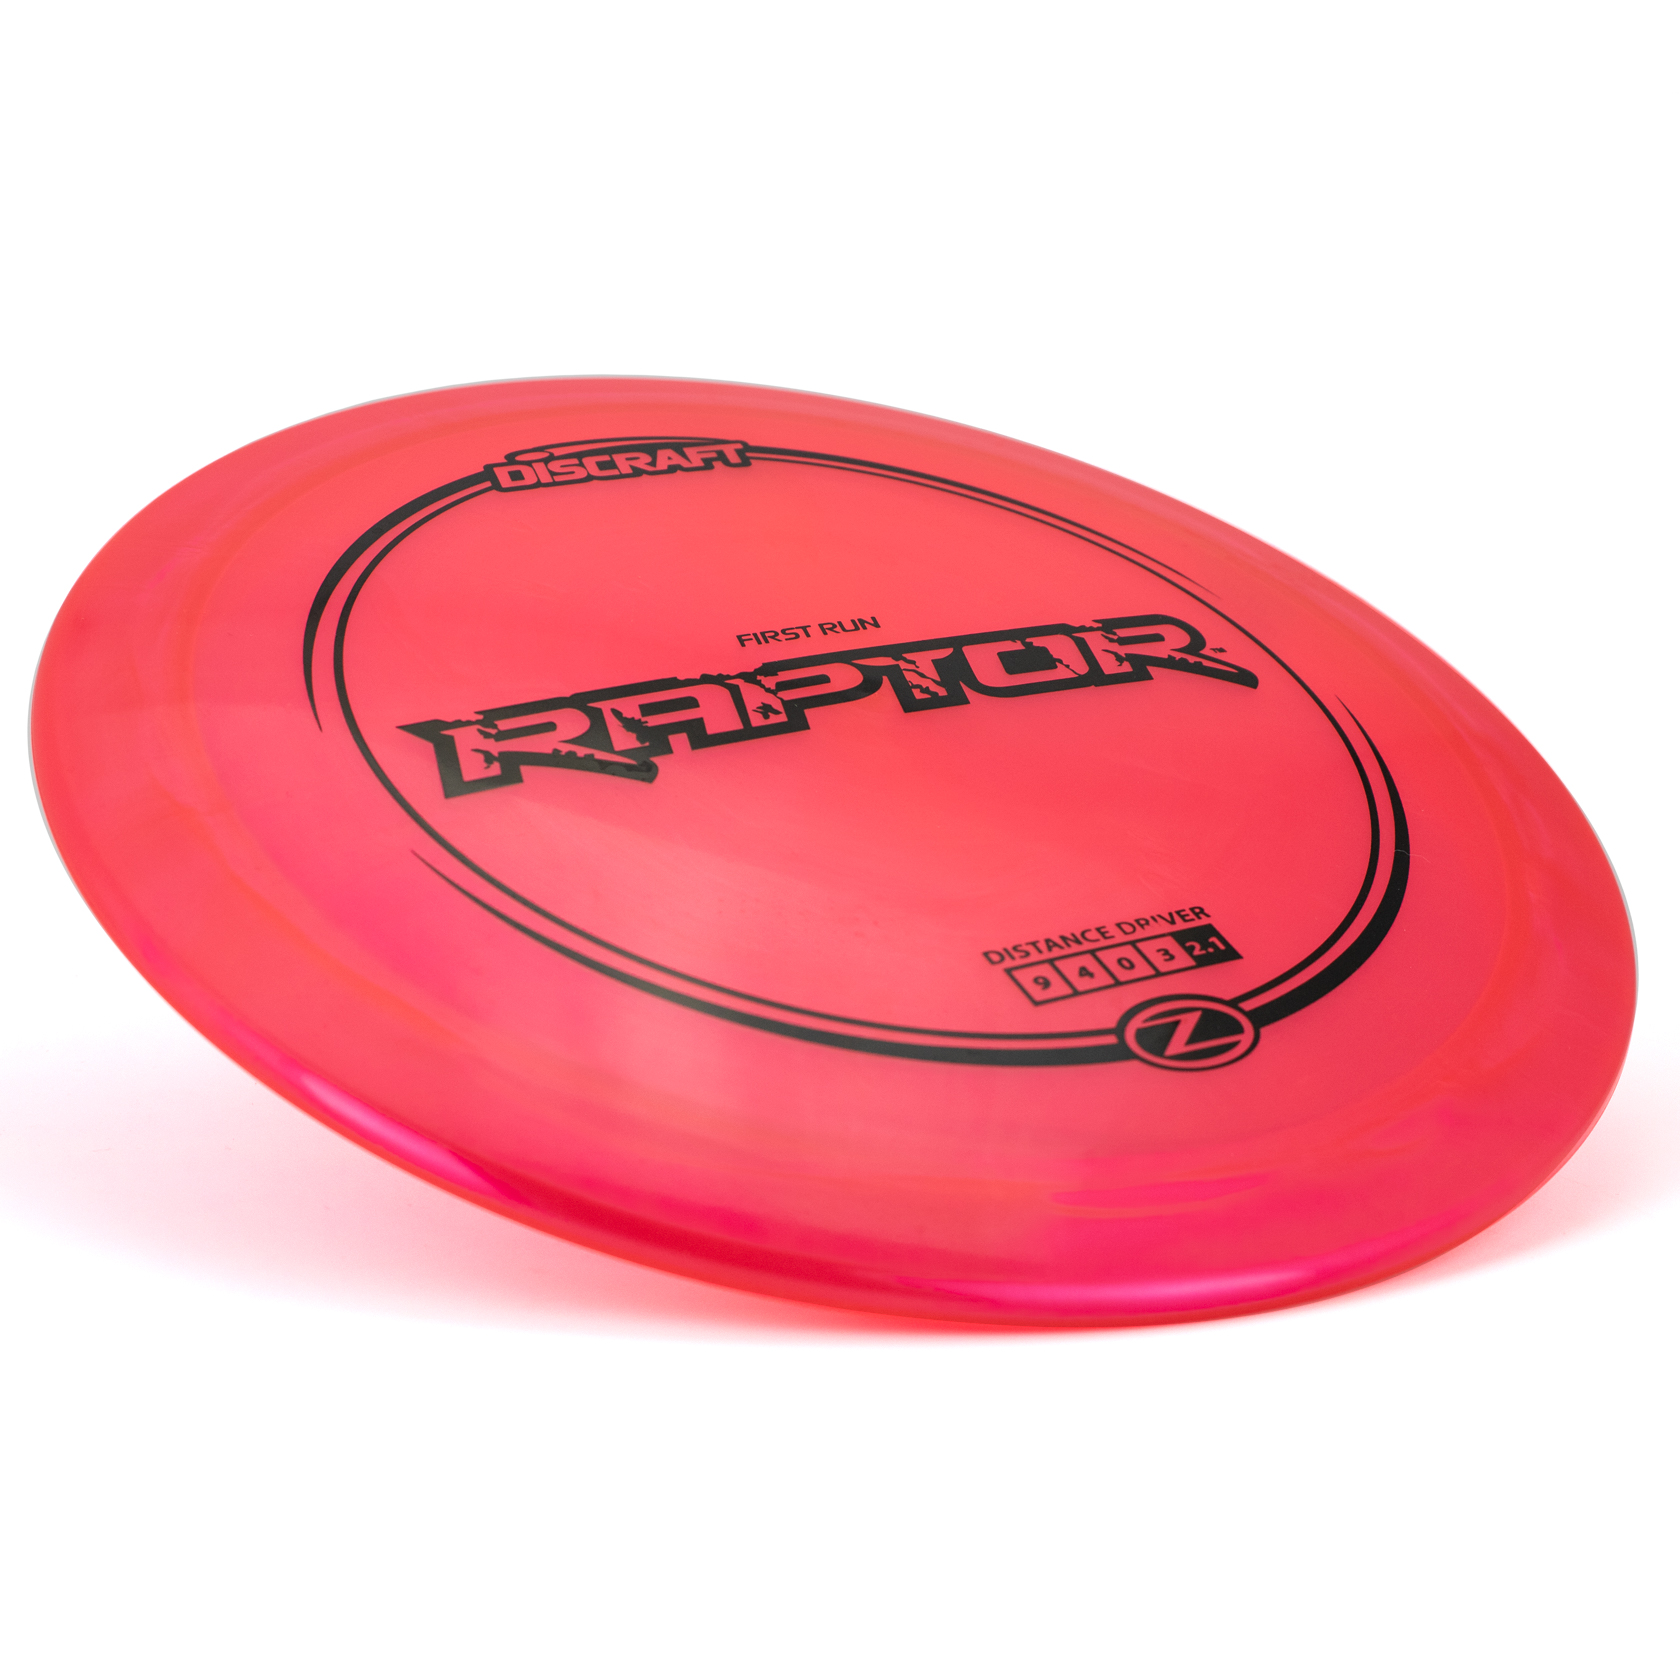 Discraft Discs Distance Driver Raptor red in Z plastic - Paul Ulibarri